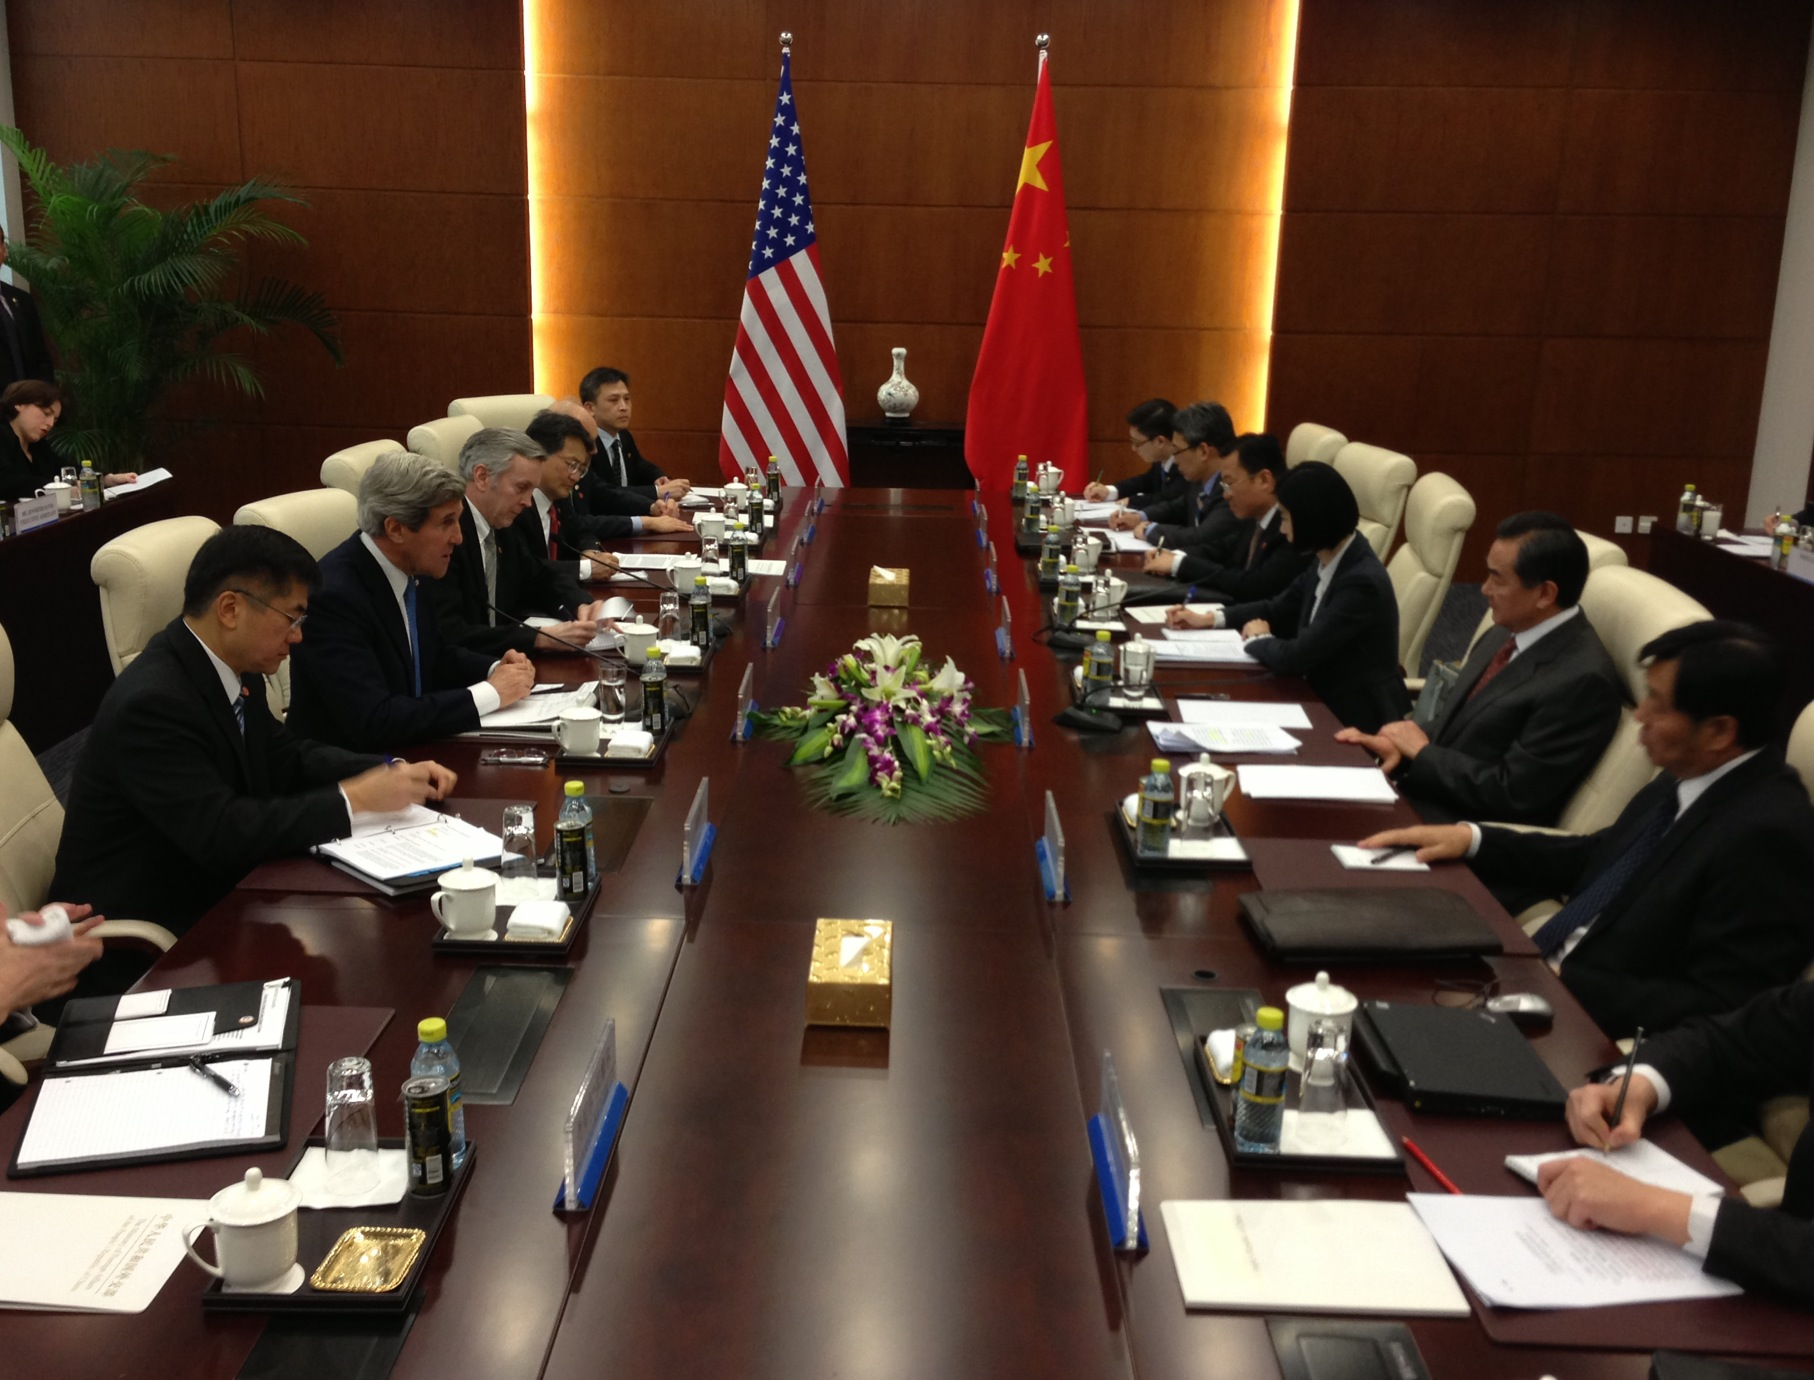 American and Chinese foreign policy makers meet to discuss relations